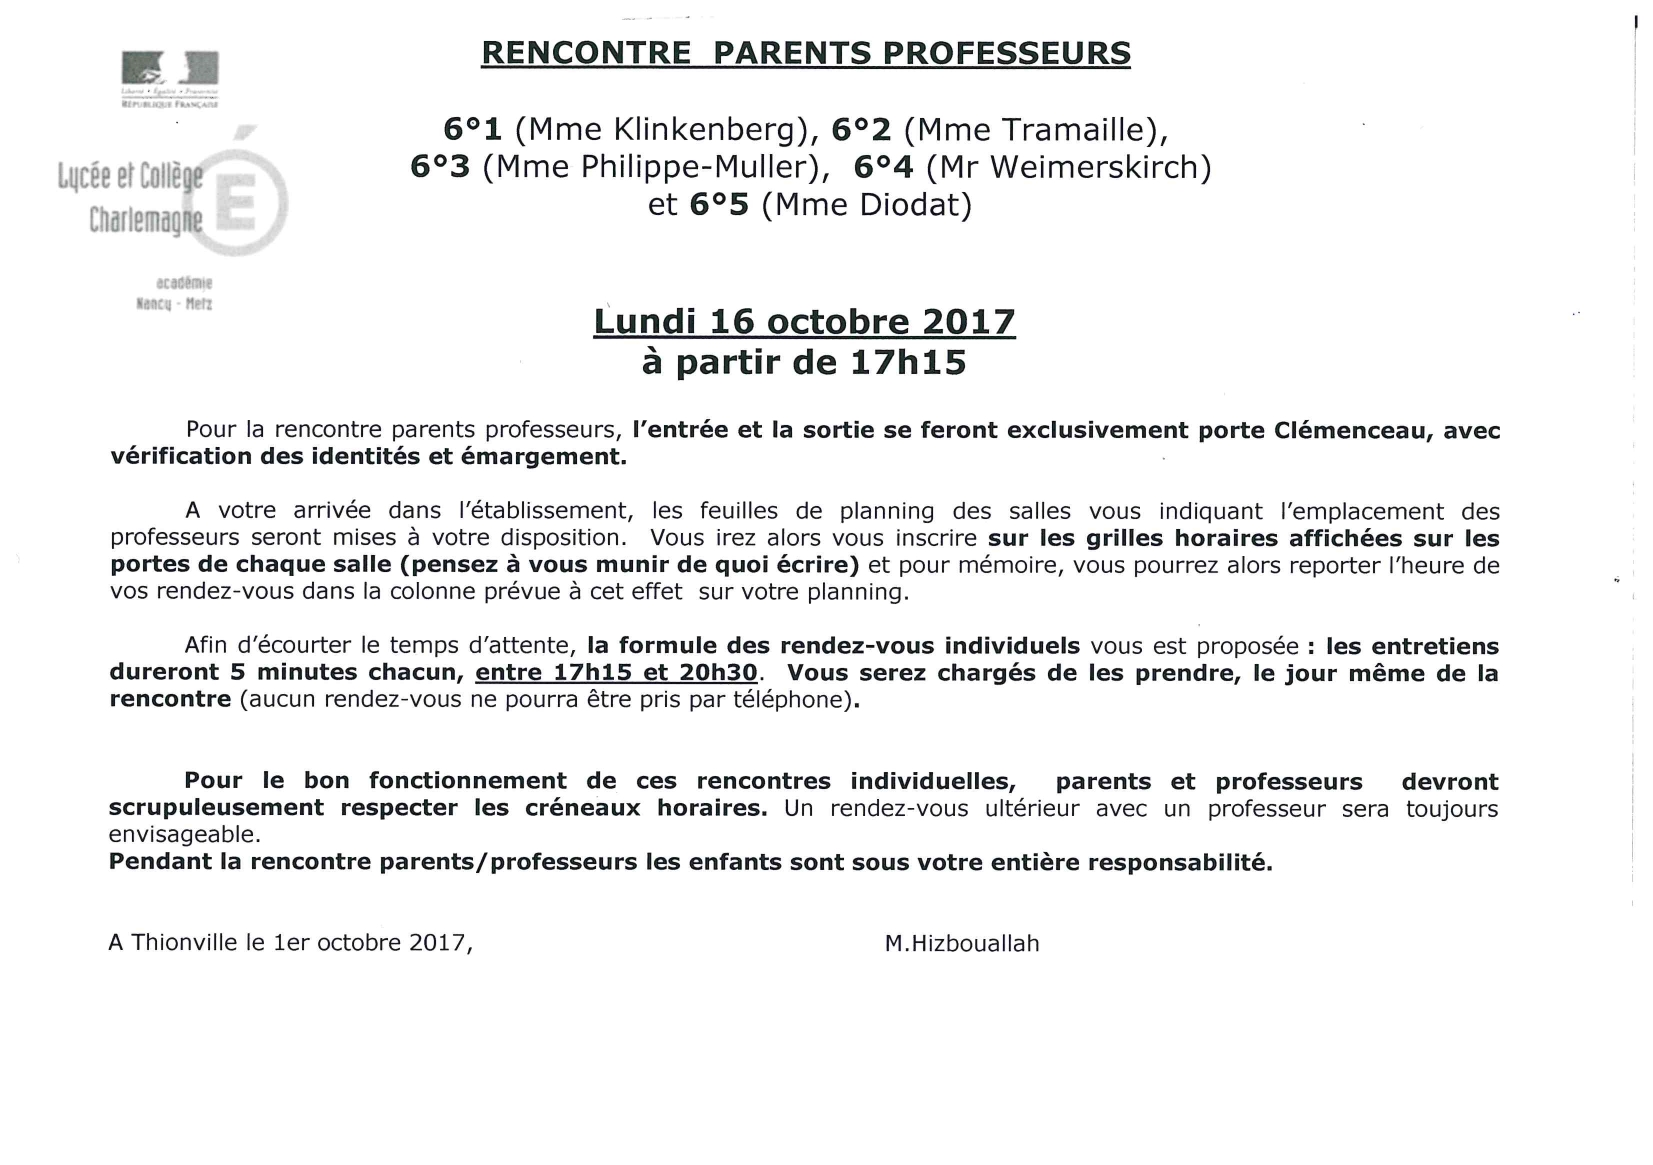 rencontre_parents_profs_16-10-2017.jpg